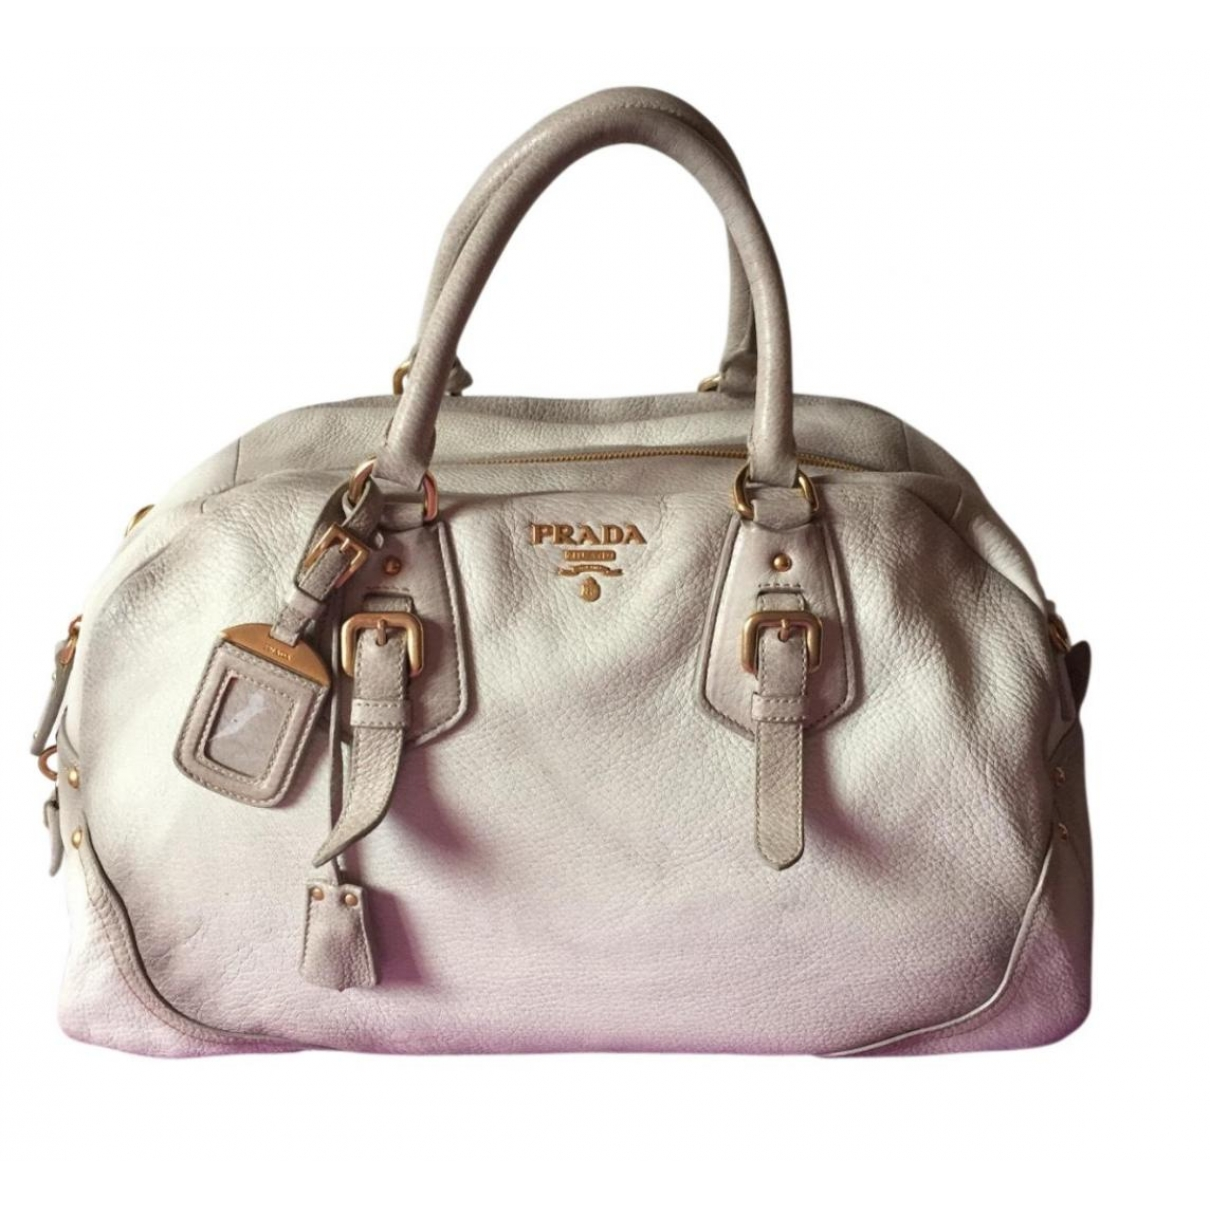 Prada \N Ecru Leather handbag for Women \N